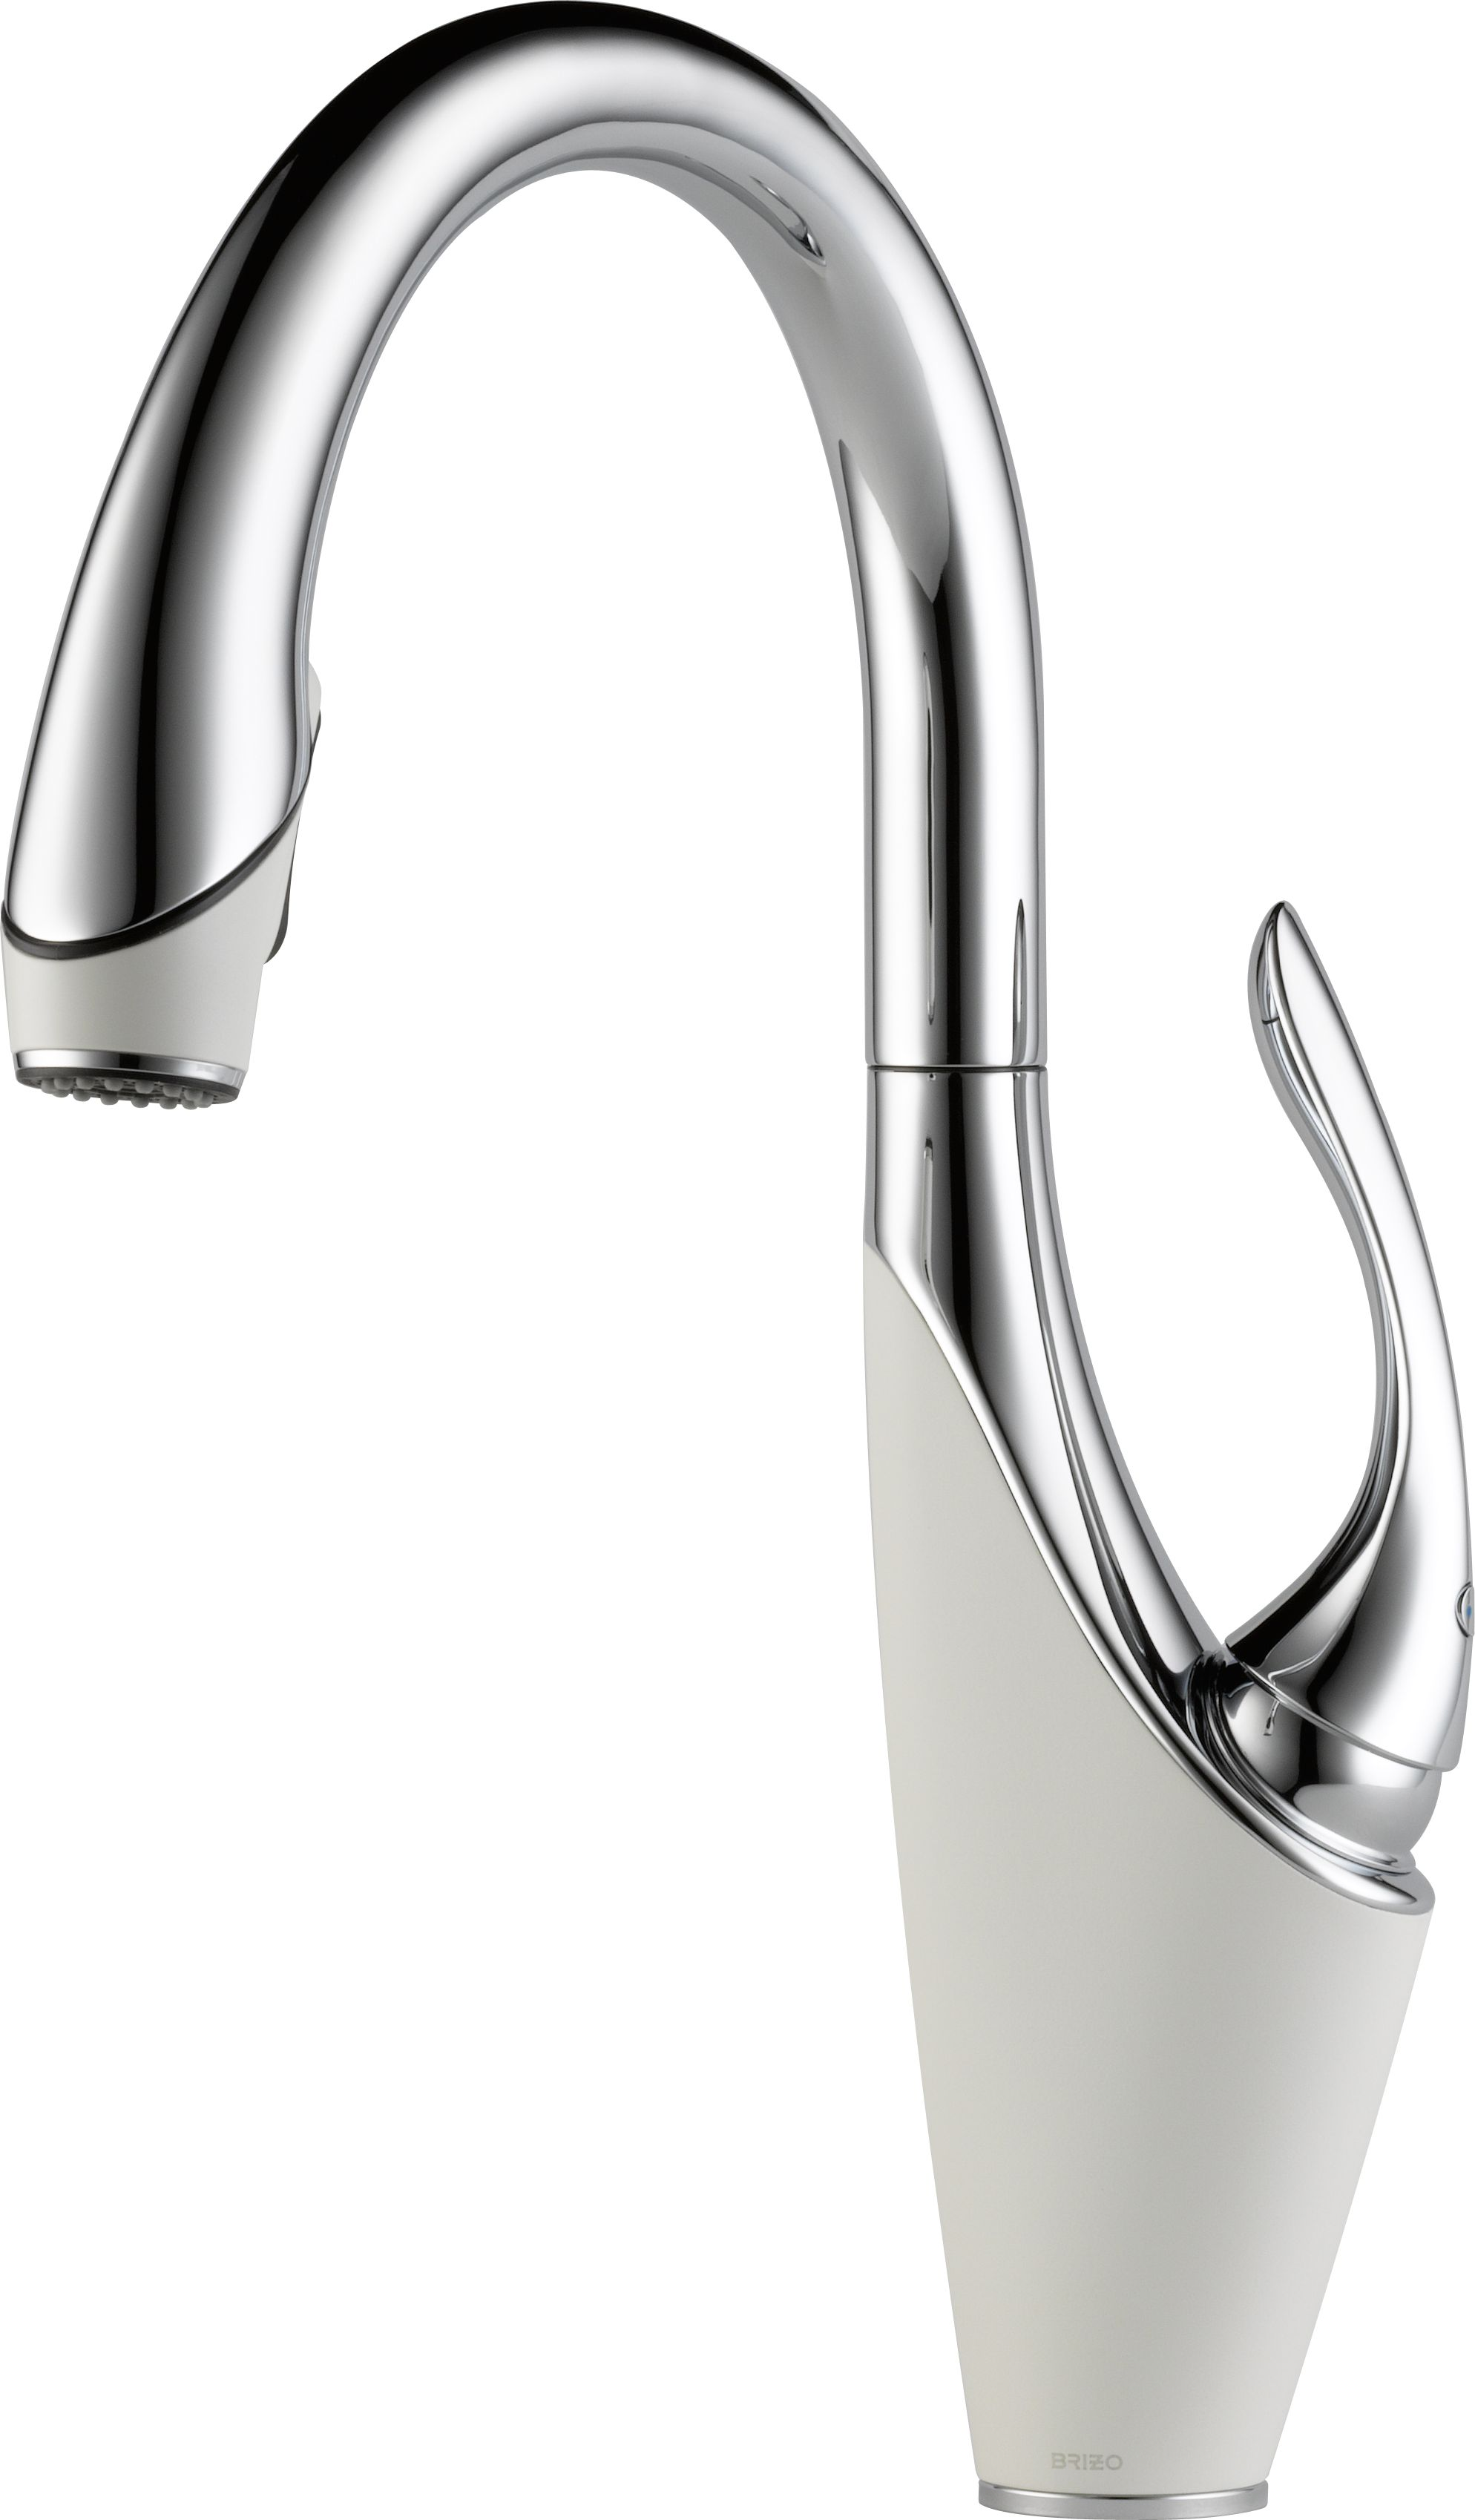 brizo lfpcmw vuelo polished chrome and matte white single handle pulldown kitchen faucet p brizo kitchen faucets Brizo LF PCMW Vuelo Polished Chrome and Matte White Single Handle Pull Down Kitchen